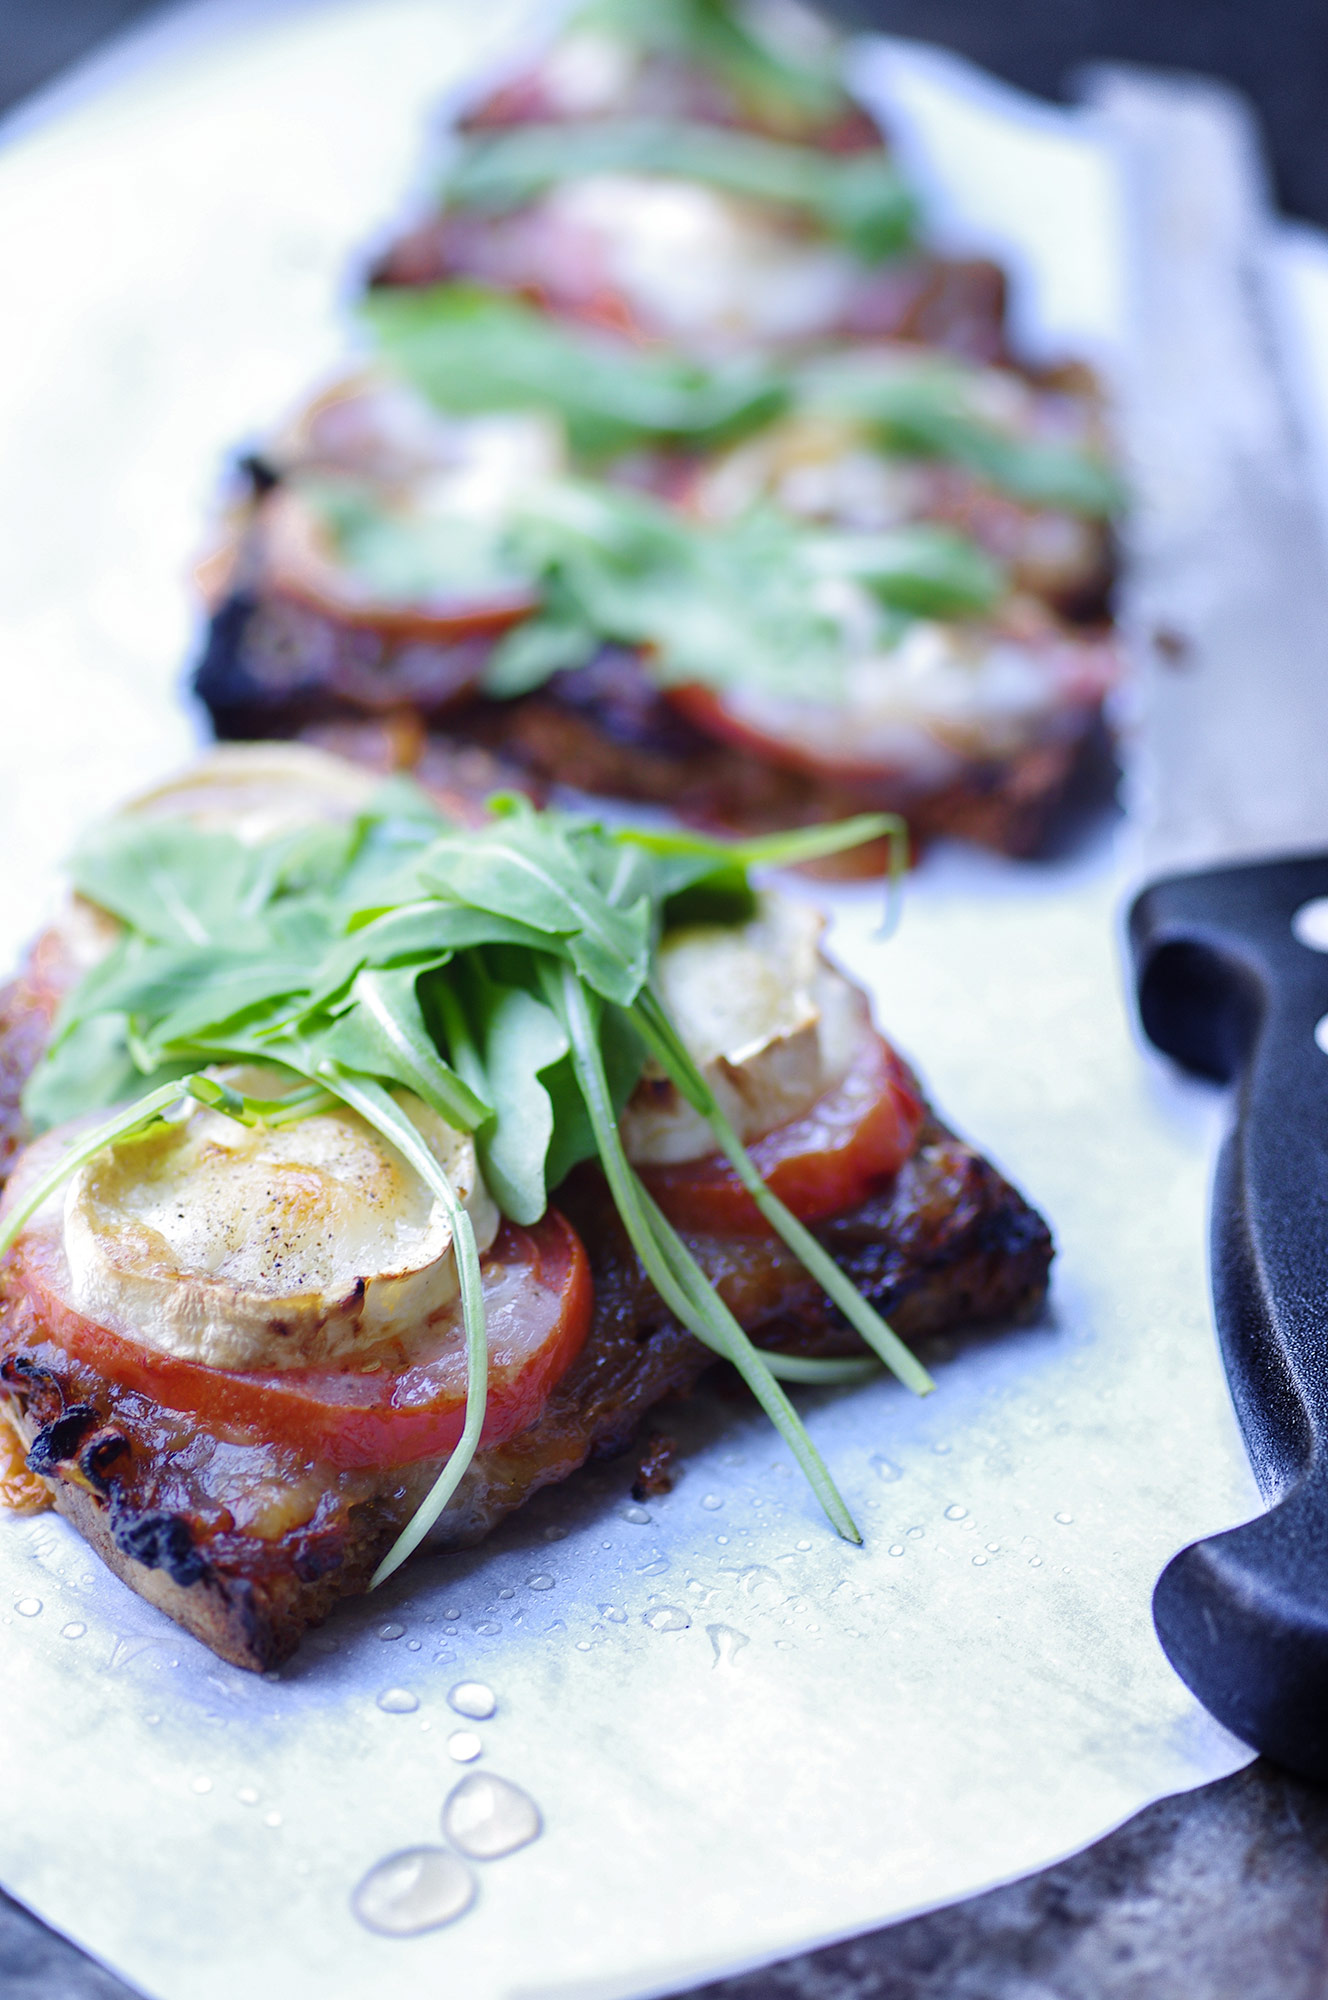 tartines, tartine, goat chees, cheese, fromage, tomato tomtate, kosher, kasher, cacher, roquette, recette , recipe, green, veggie, veg, vegetarian, healthy, easy, quick, blog, blogger, food, fooding, cooking, onion, confit, onion confit, toast